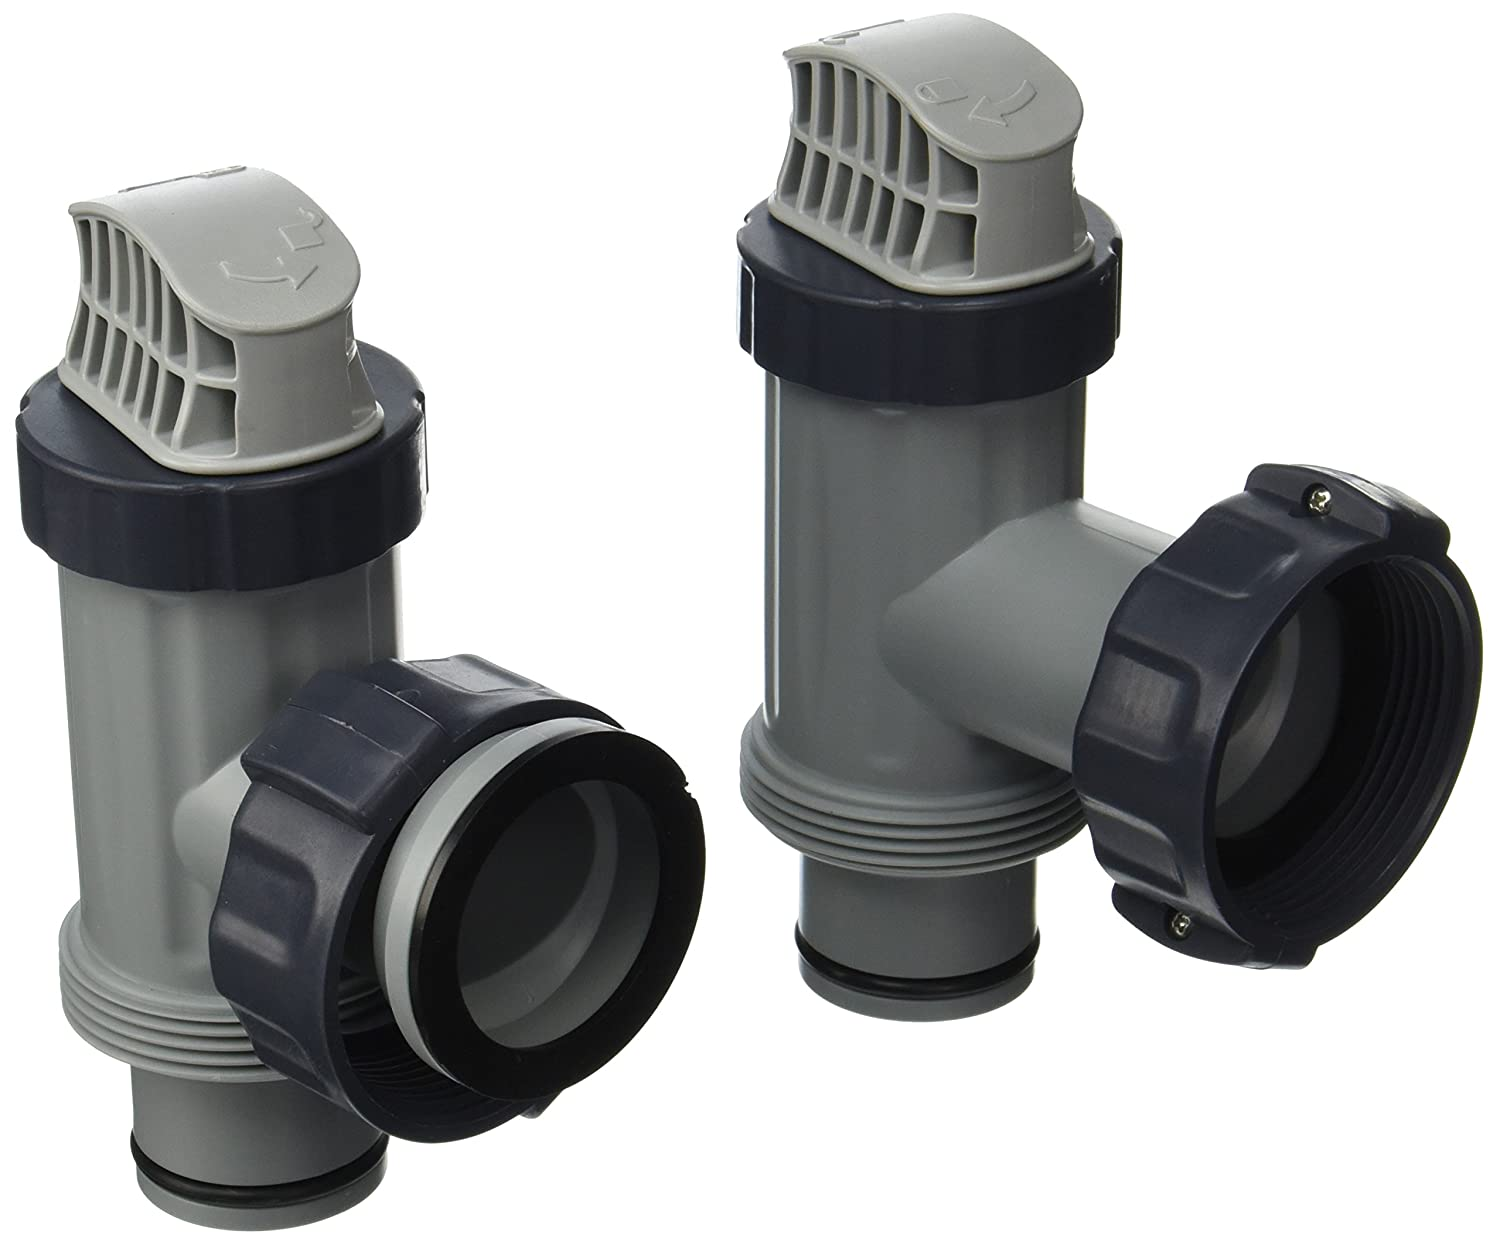 Amazon.com: Intex Above Ground Plunger Valves with Gaskets & Nuts  Replacement Part (2 Pack): Garden & Outdoor